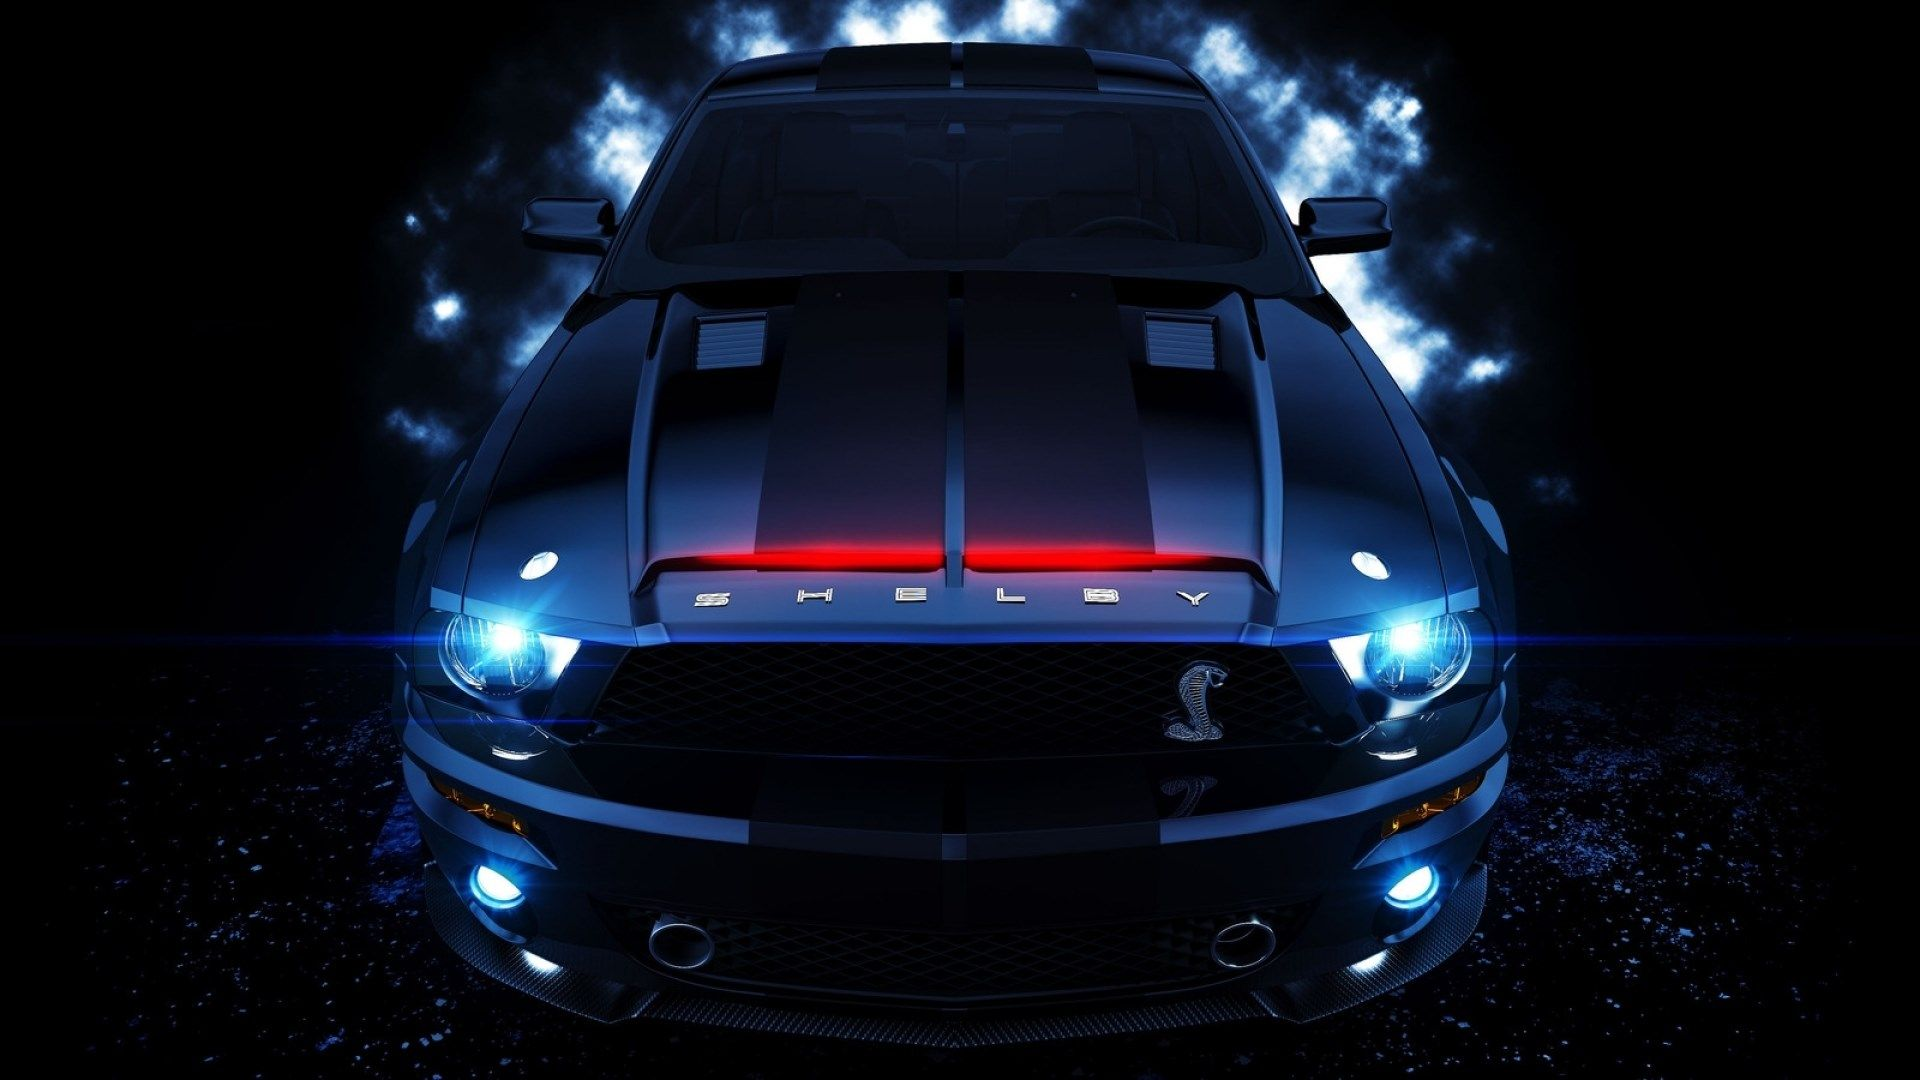 Ford Mustang Shelby Gt500 Free Hd Widescreen Ford Mustang Shelby Gt500 Ford Mustang Shelby Ford Mustang Shelby Cobra